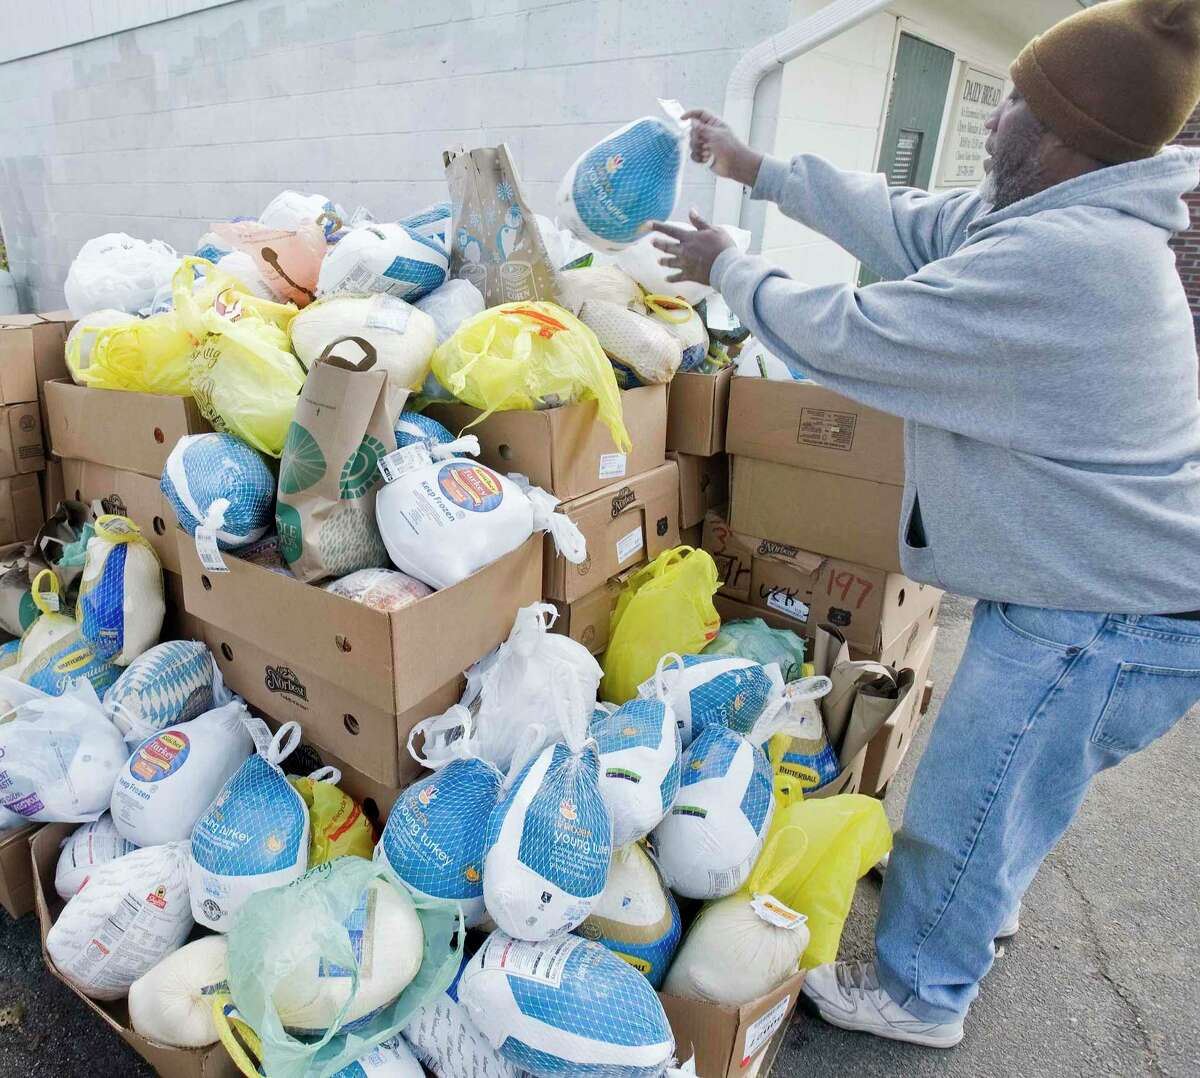 United Way is organizing a campaign to raise money for free Thanksgiving meals for families in need. Pictured: Volunteer Arthur James, of Danbury, organizes frozen turkeys for Thanksgiving Food Distribution at the Daily Bread Food Pantry in Danbury. Monday, Nov. 20, 2017